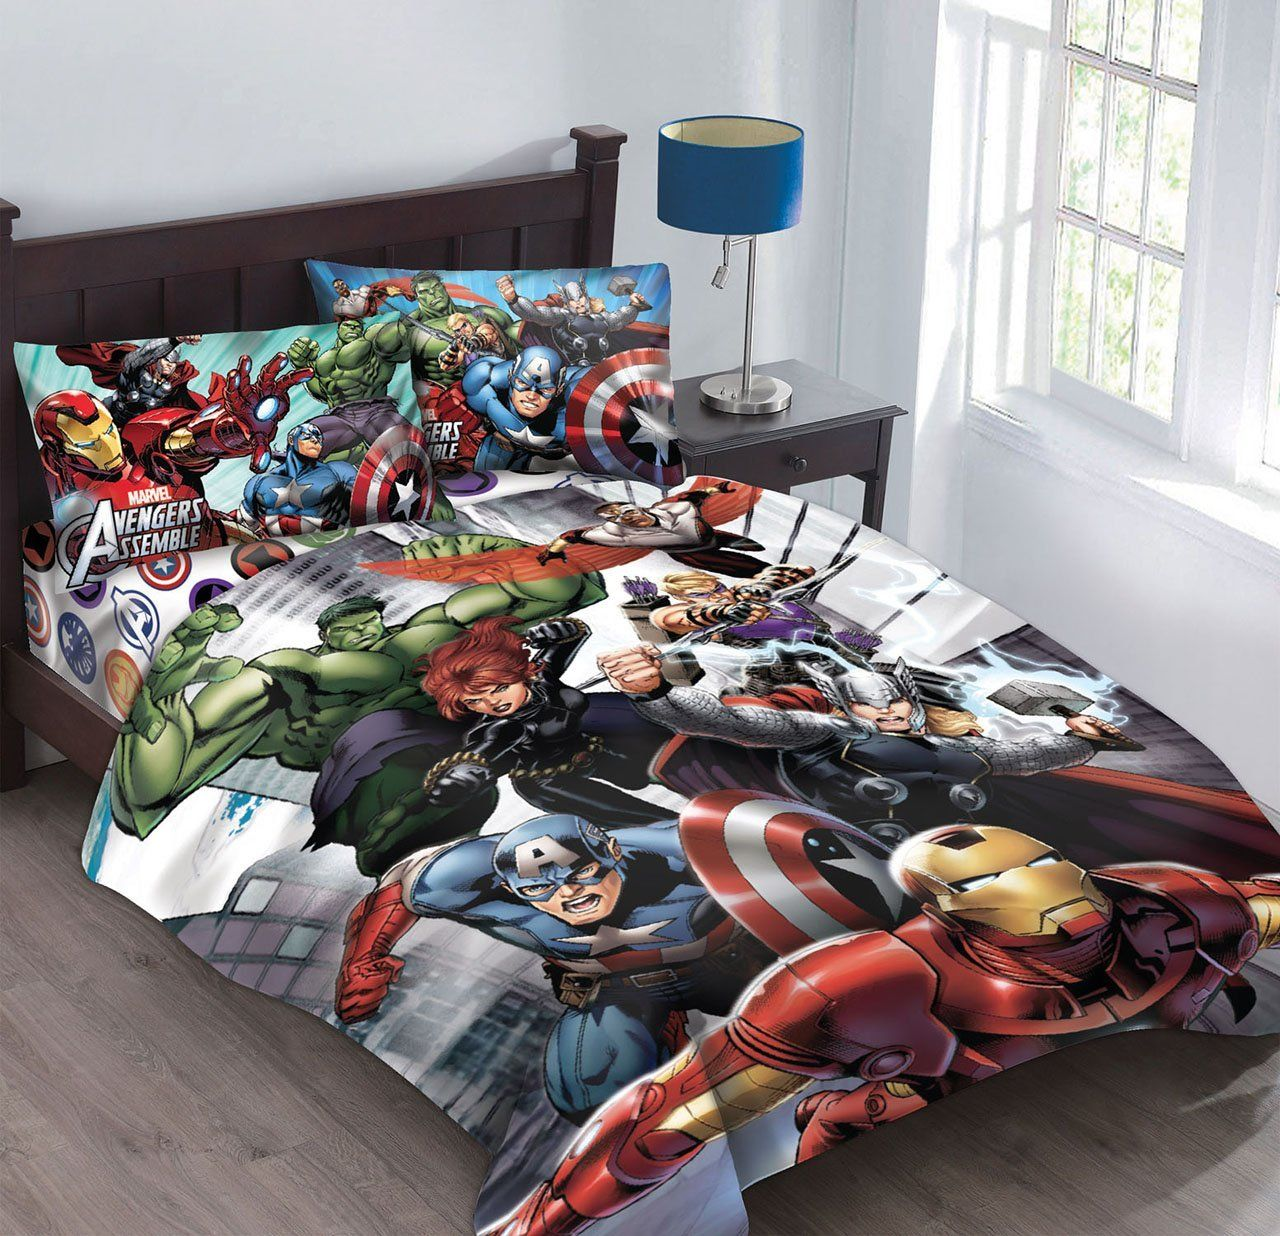 Amazon.com: Marvel Avengers Agents of SHIELD Full Comforter Set with Fitted Sheet: Home & Kitchen